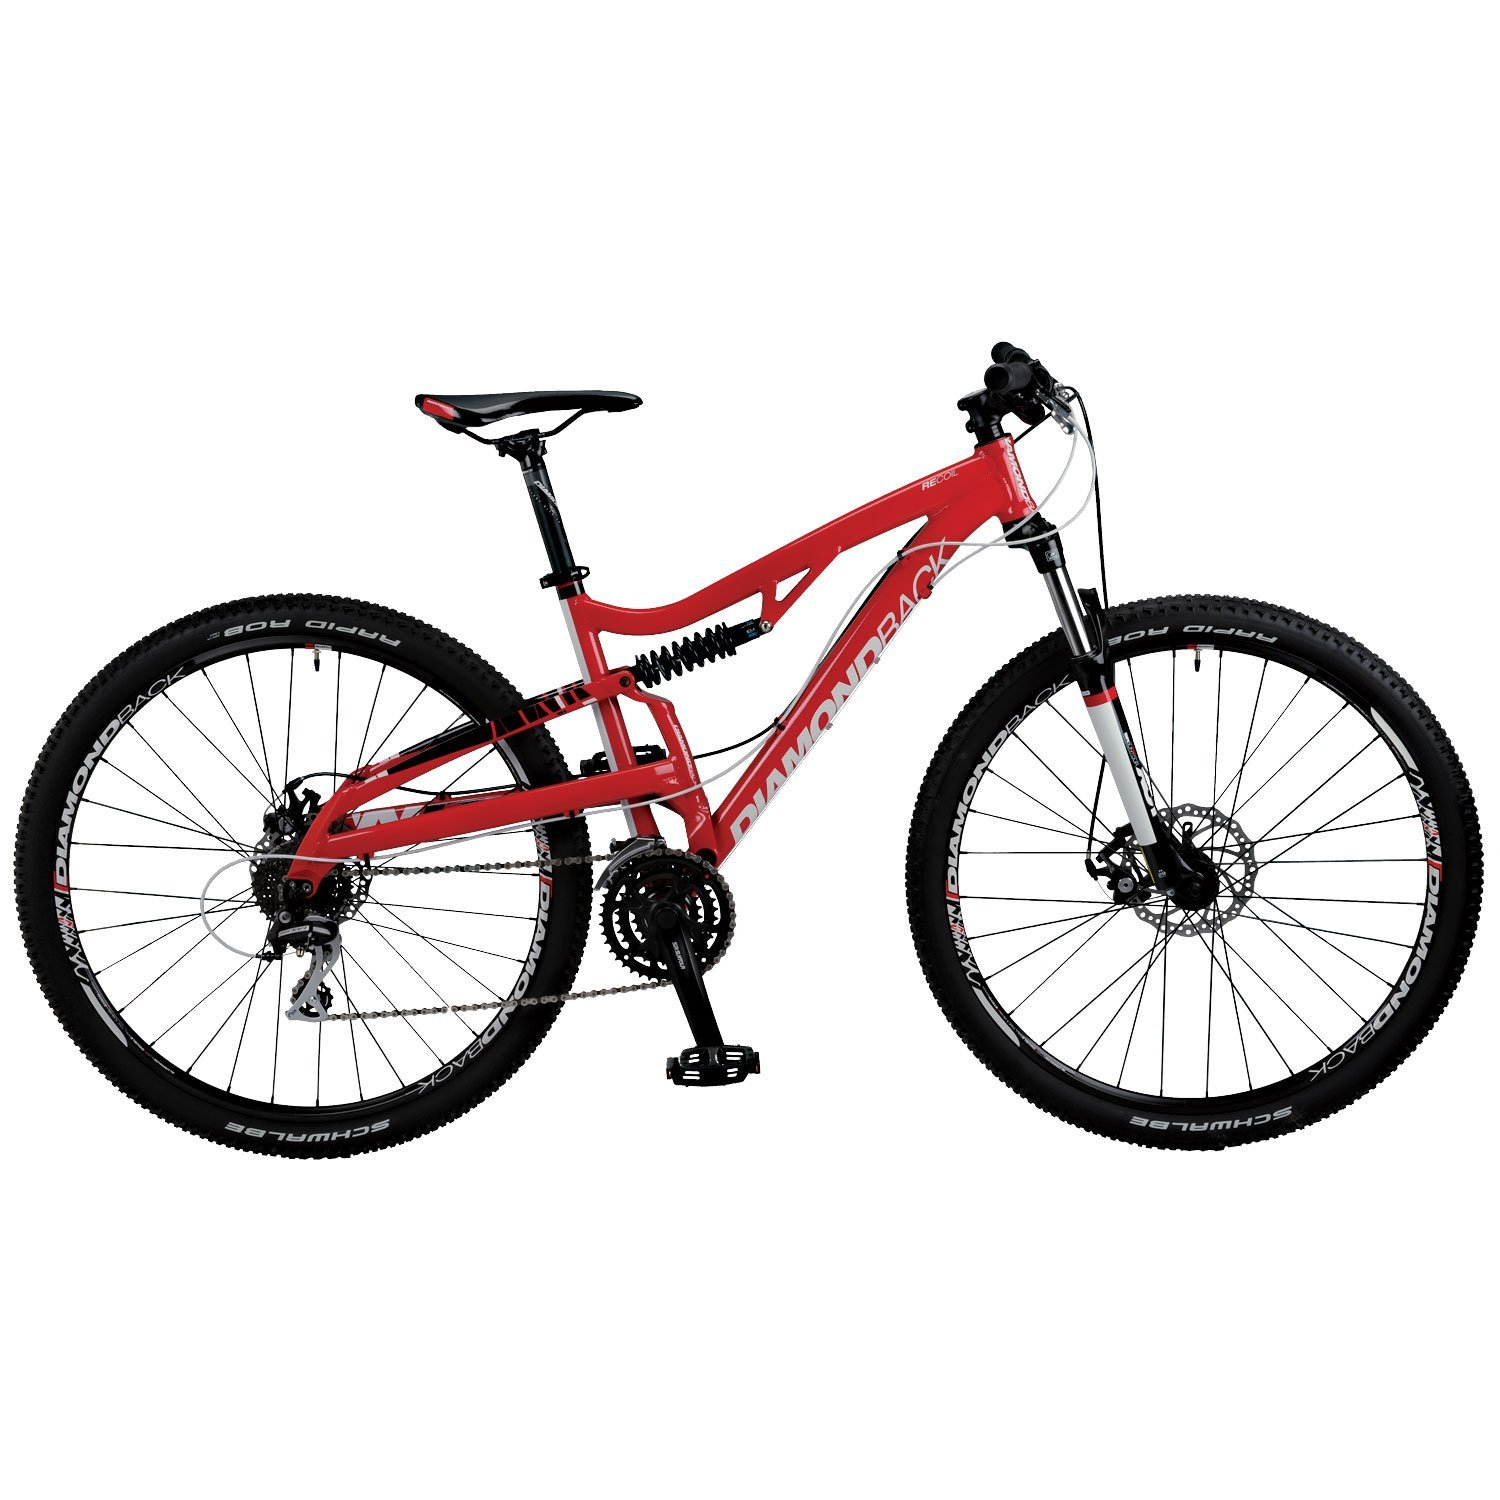 5 Best Mountain Bikes